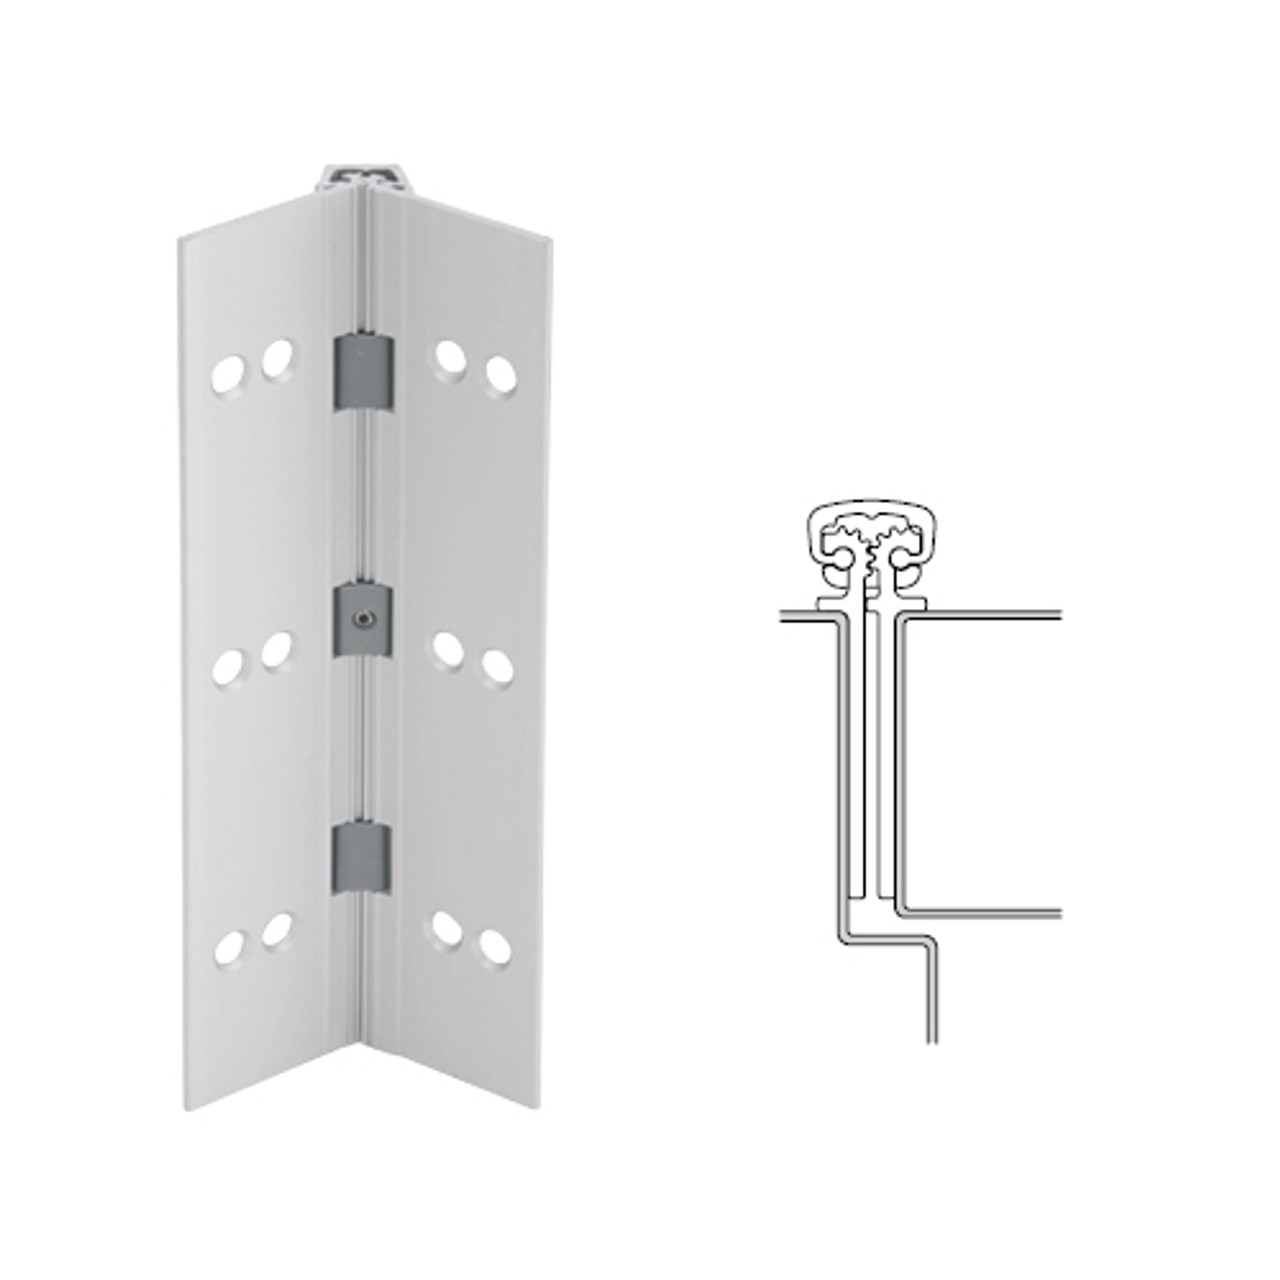 027XY-US28-85-WD IVES Full Mortise Continuous Geared Hinges with Wood Screws in Satin Aluminum